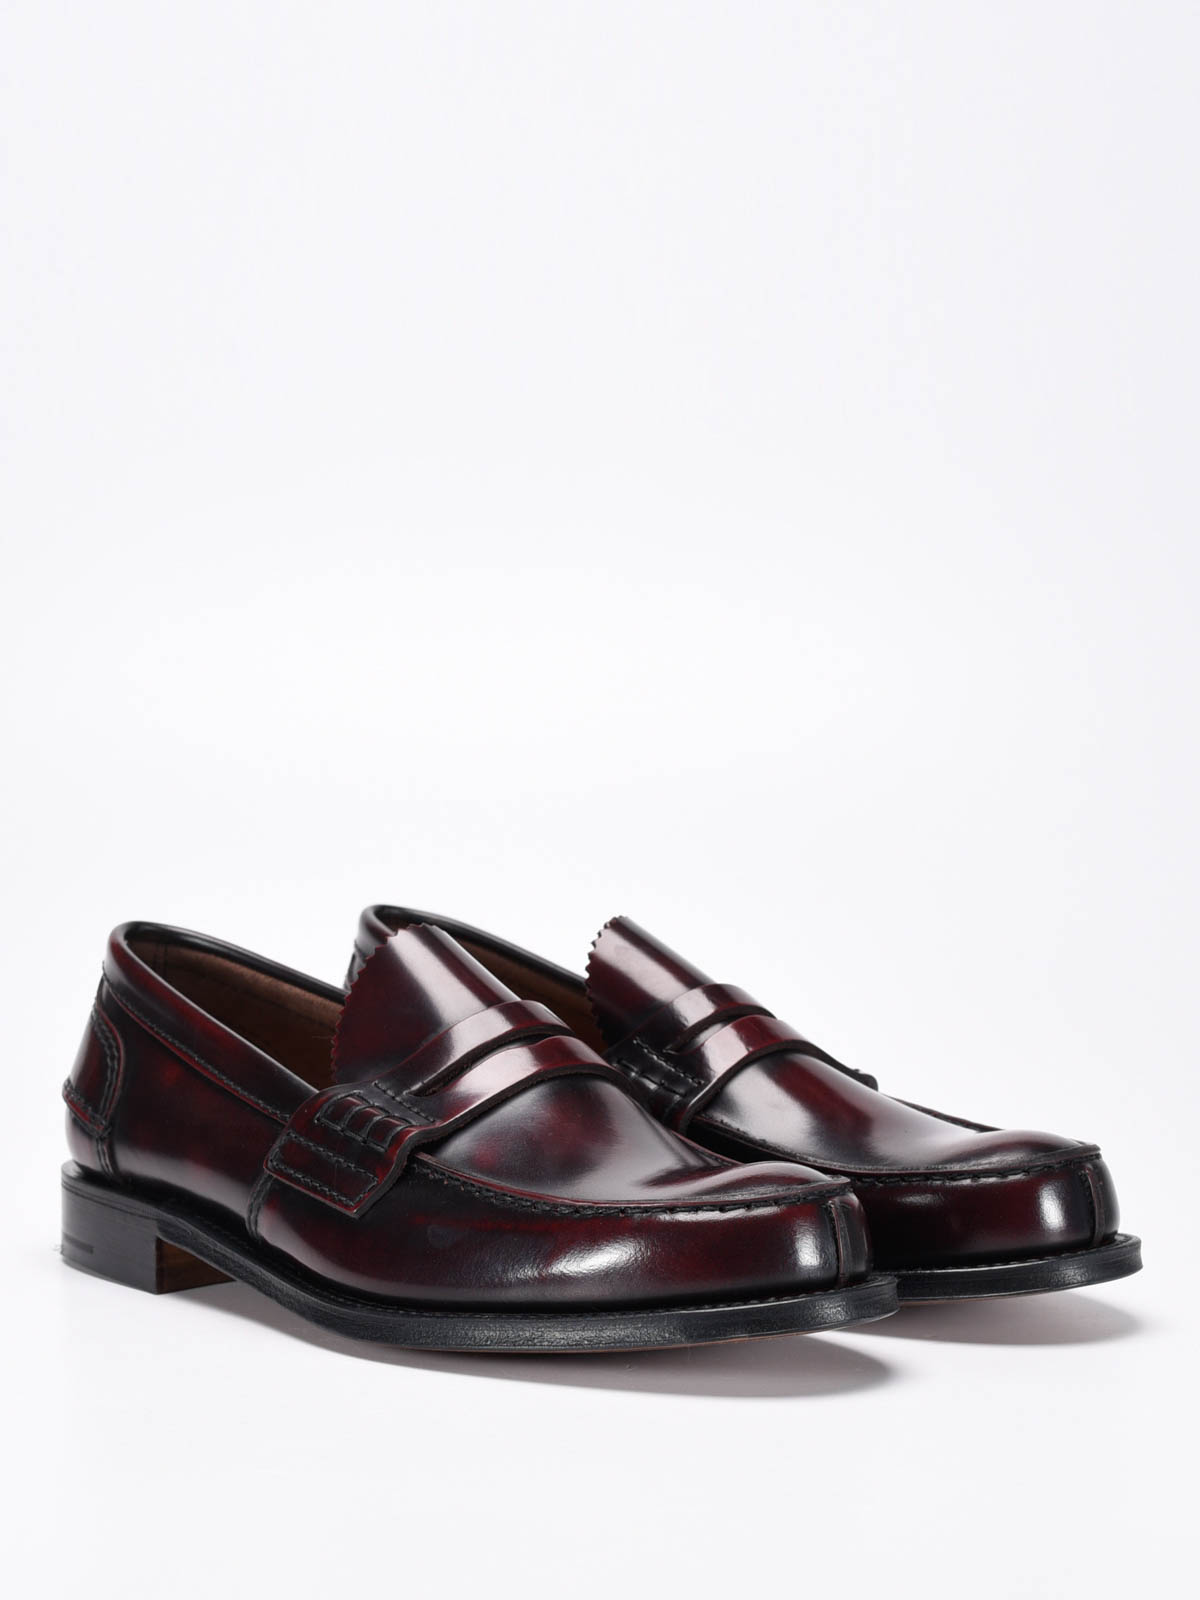 low priced e59e2 e72d9 churchs-online -loafers--slippers-tunbridge-leather-loafers-00000100251f00s072.jpg